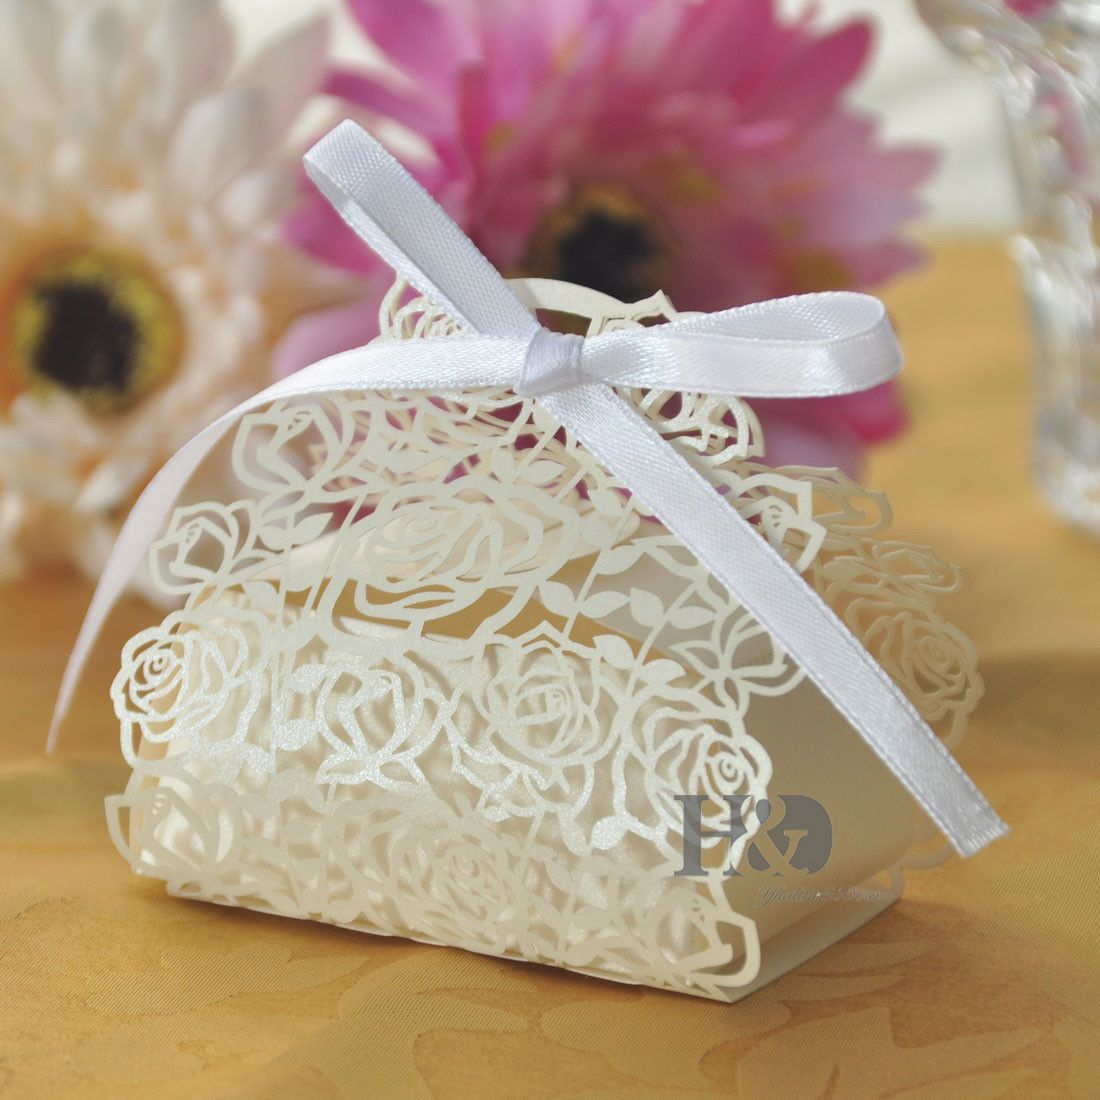 Details about Wholesale 200 Ivory Rose Candy Boxes Wedding Favor ...